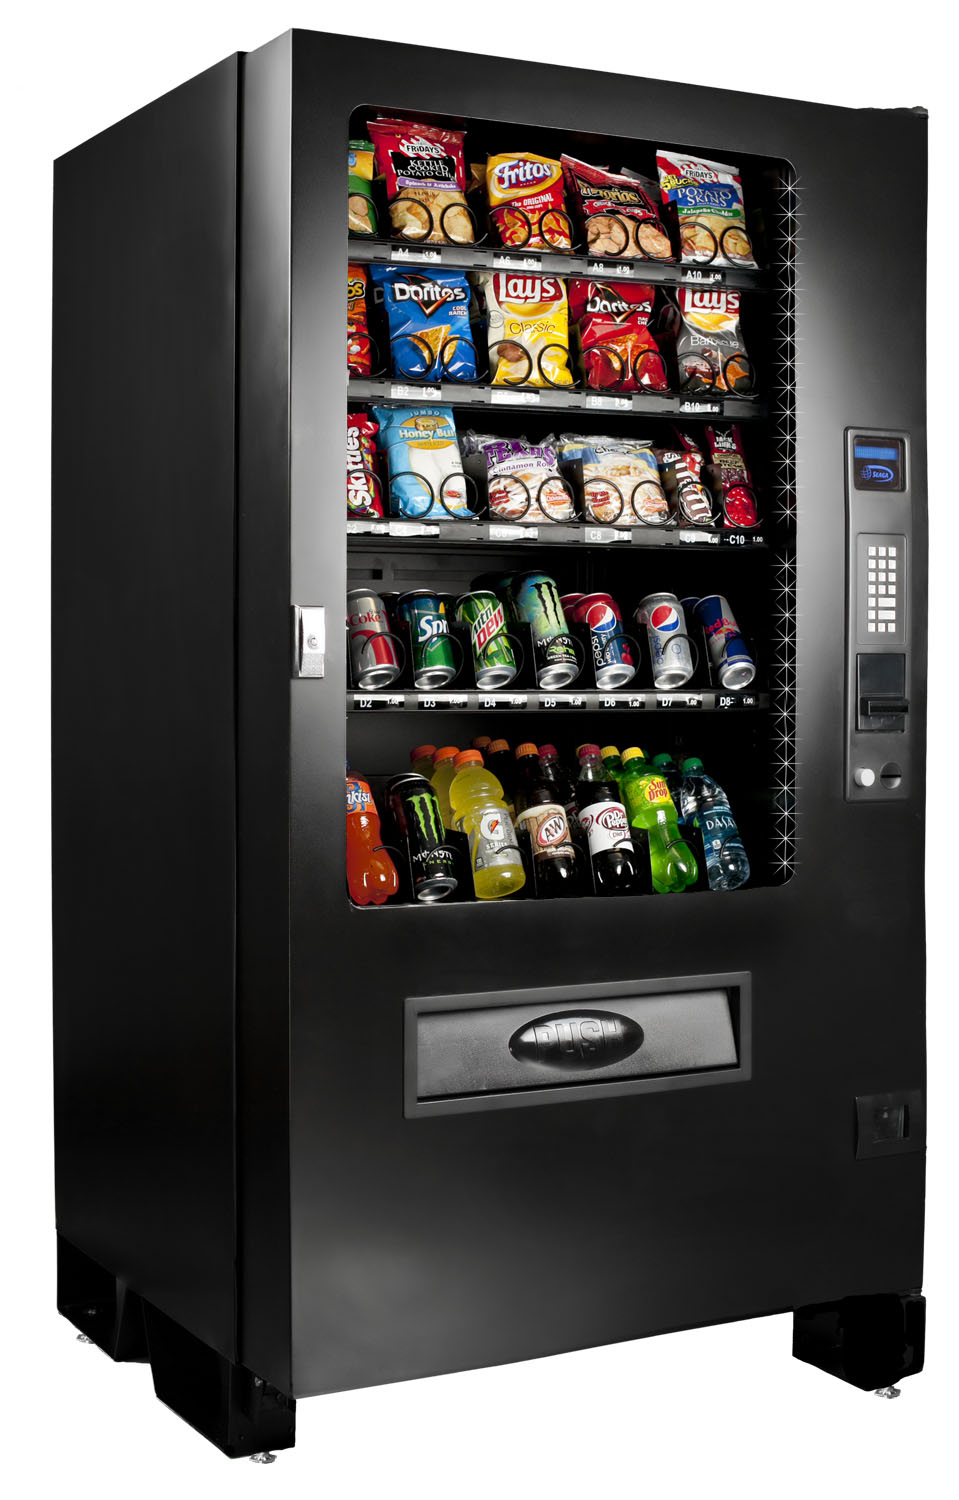 vendor machine for sale